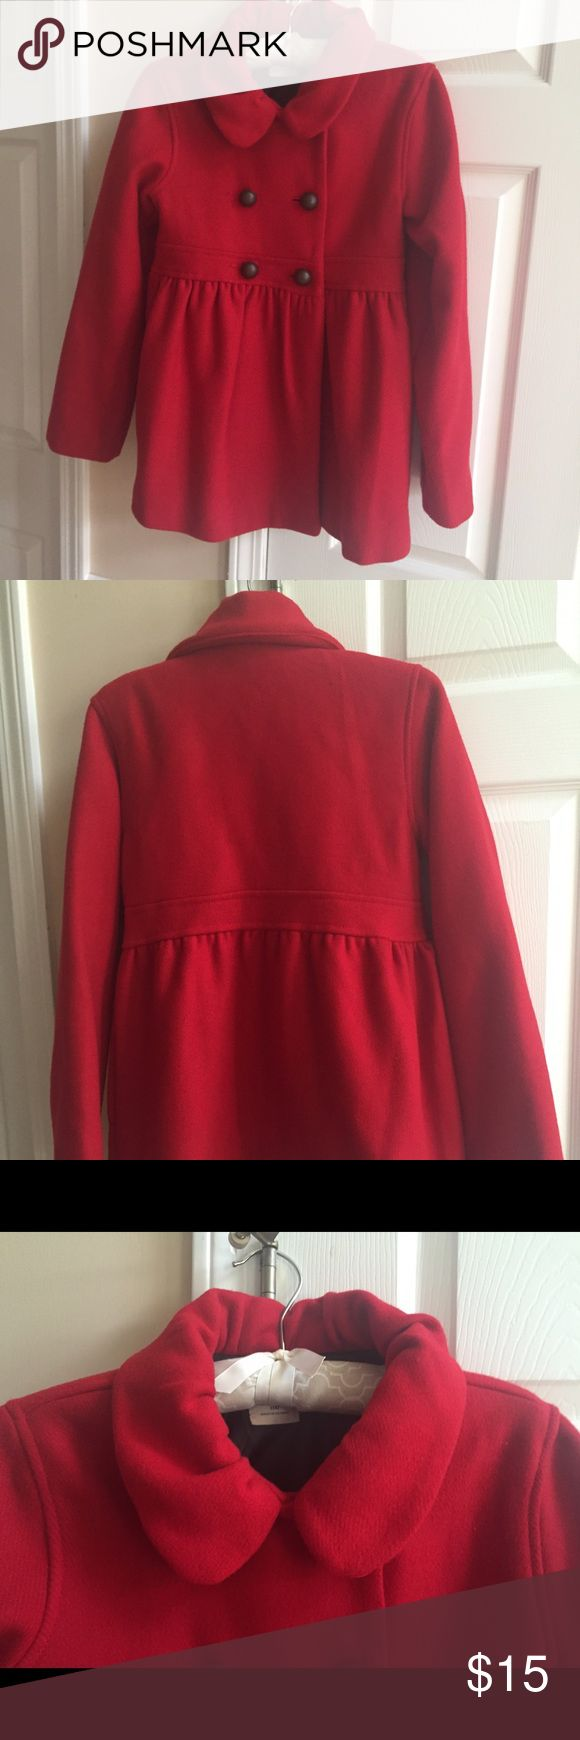 Old Navy Girls' Pea Coat This is a beautiful red pea coat from Old Navy.  In perfect condition, this coat is a nice blend of wool and polyester. The exquisite details make it extra special. Your favorite girl will look adorable in this coat! Old Navy Jackets & Coats Pea Coats